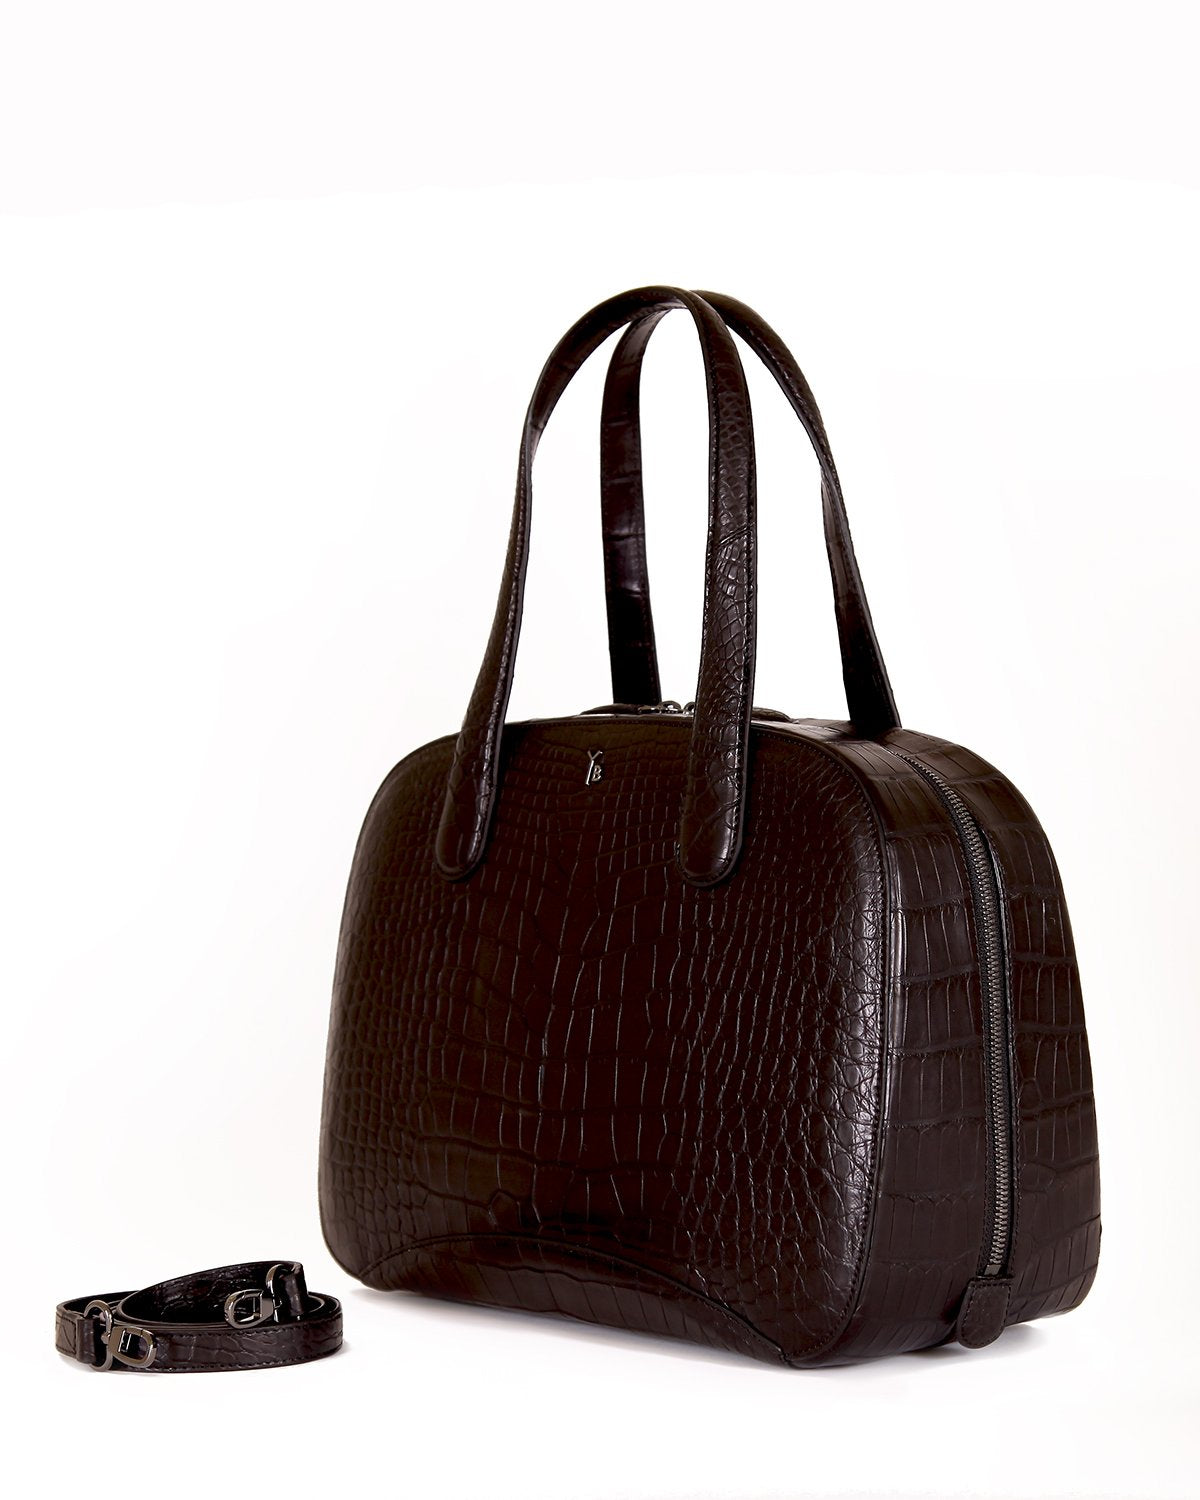 Black Matte Angle View of American Alligator Crocodile Bag with Strap